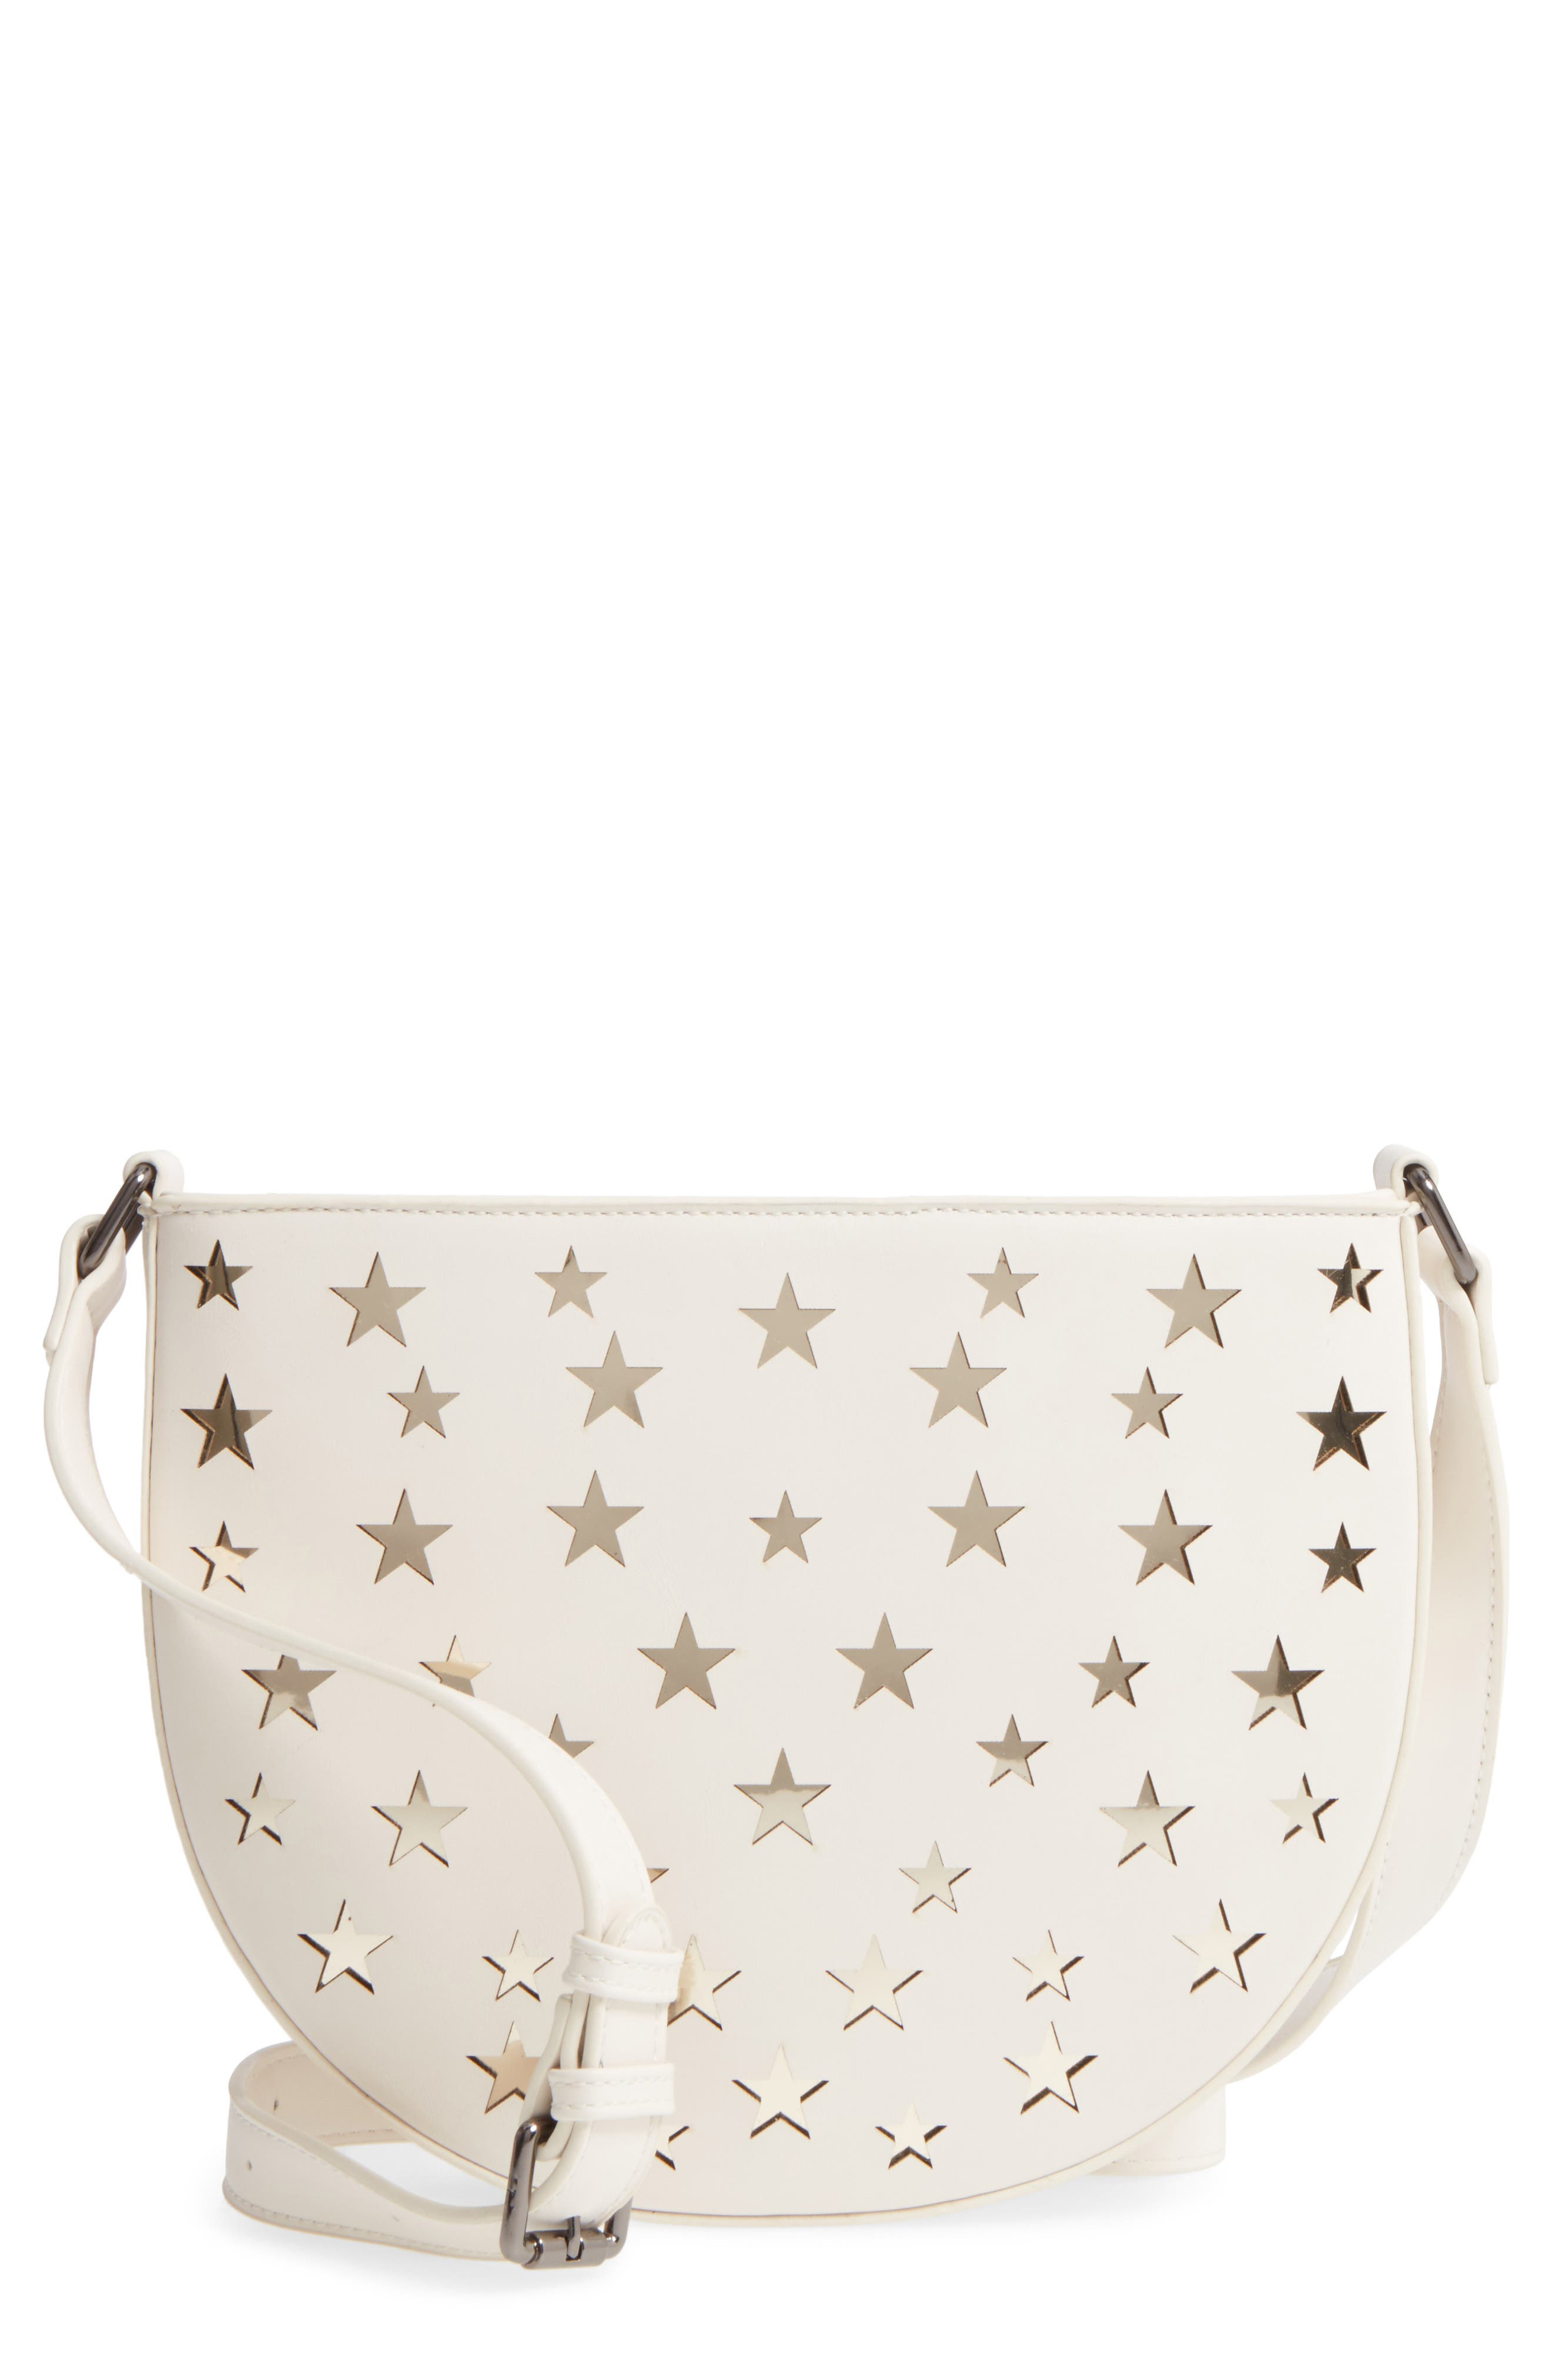 Half Moon Faux Leather Crossbody Bag,                         Main,                         color, White W/ Gold Stars